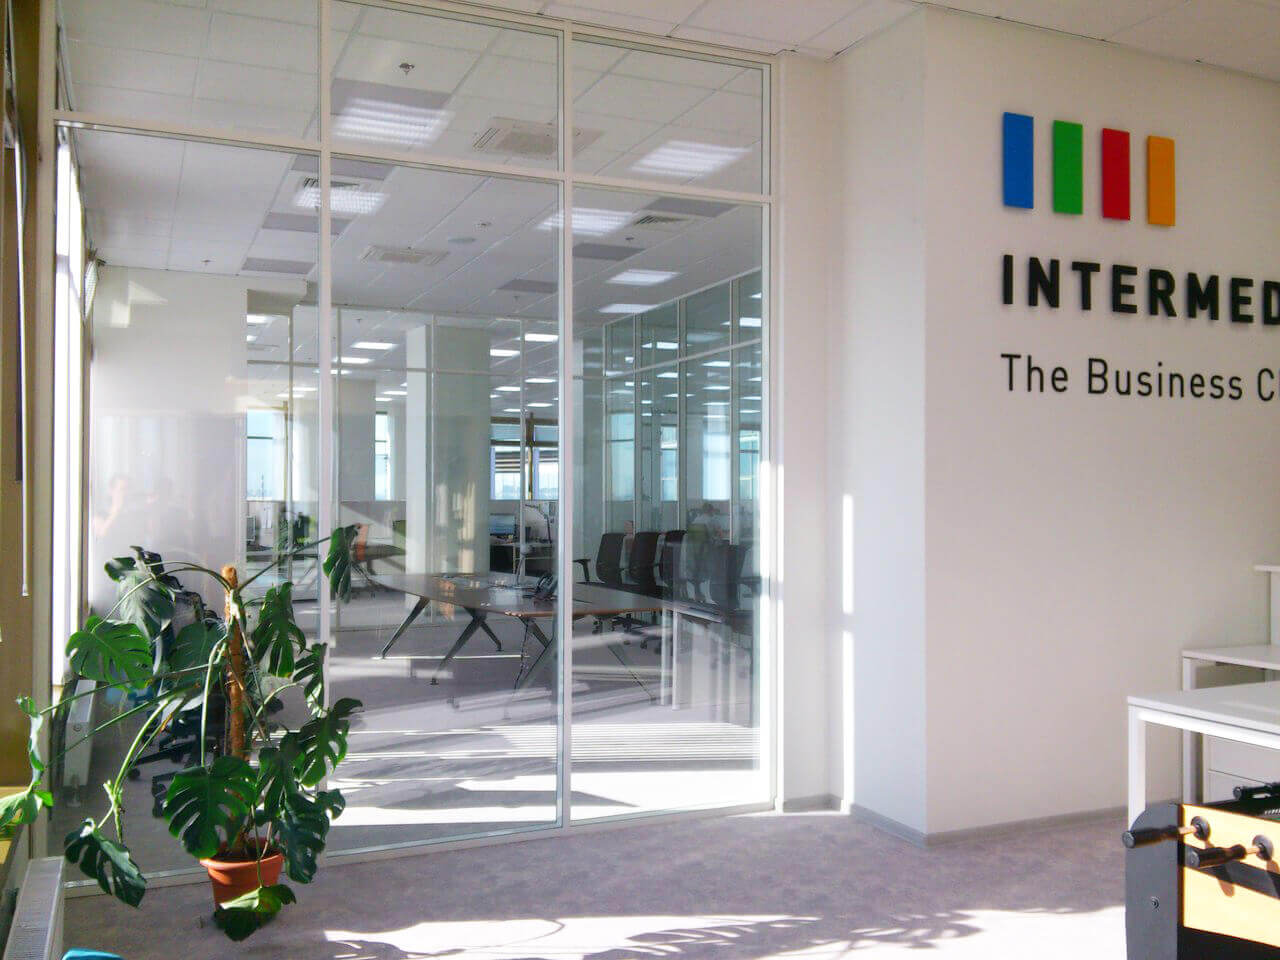 intermedia's St. Petersburg office